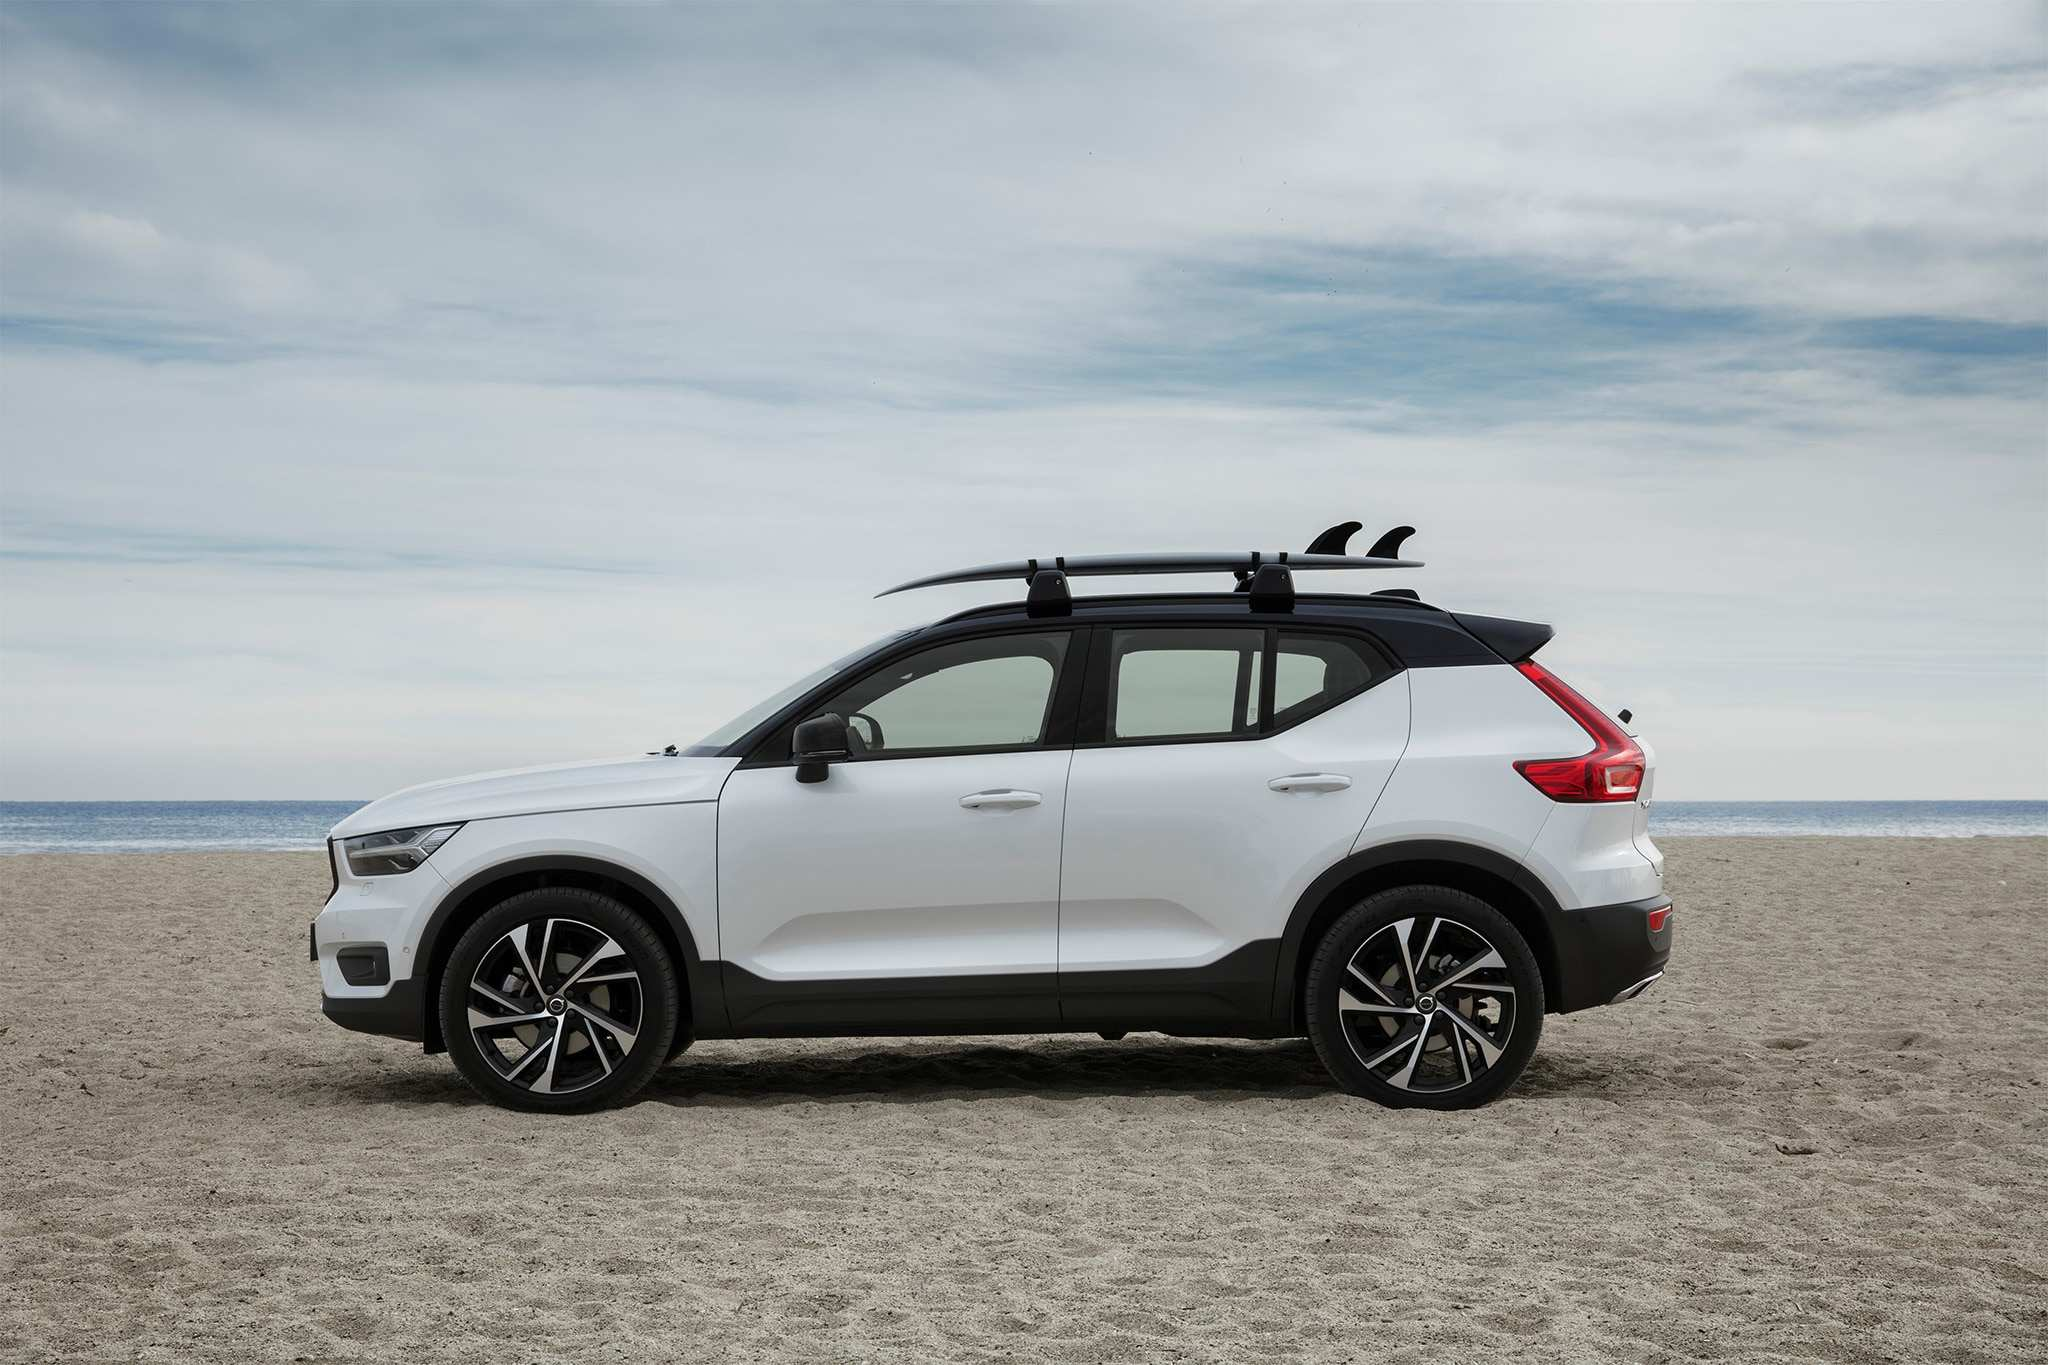 90 Best 2019 Volvo Xc40 Gas Mileage Images